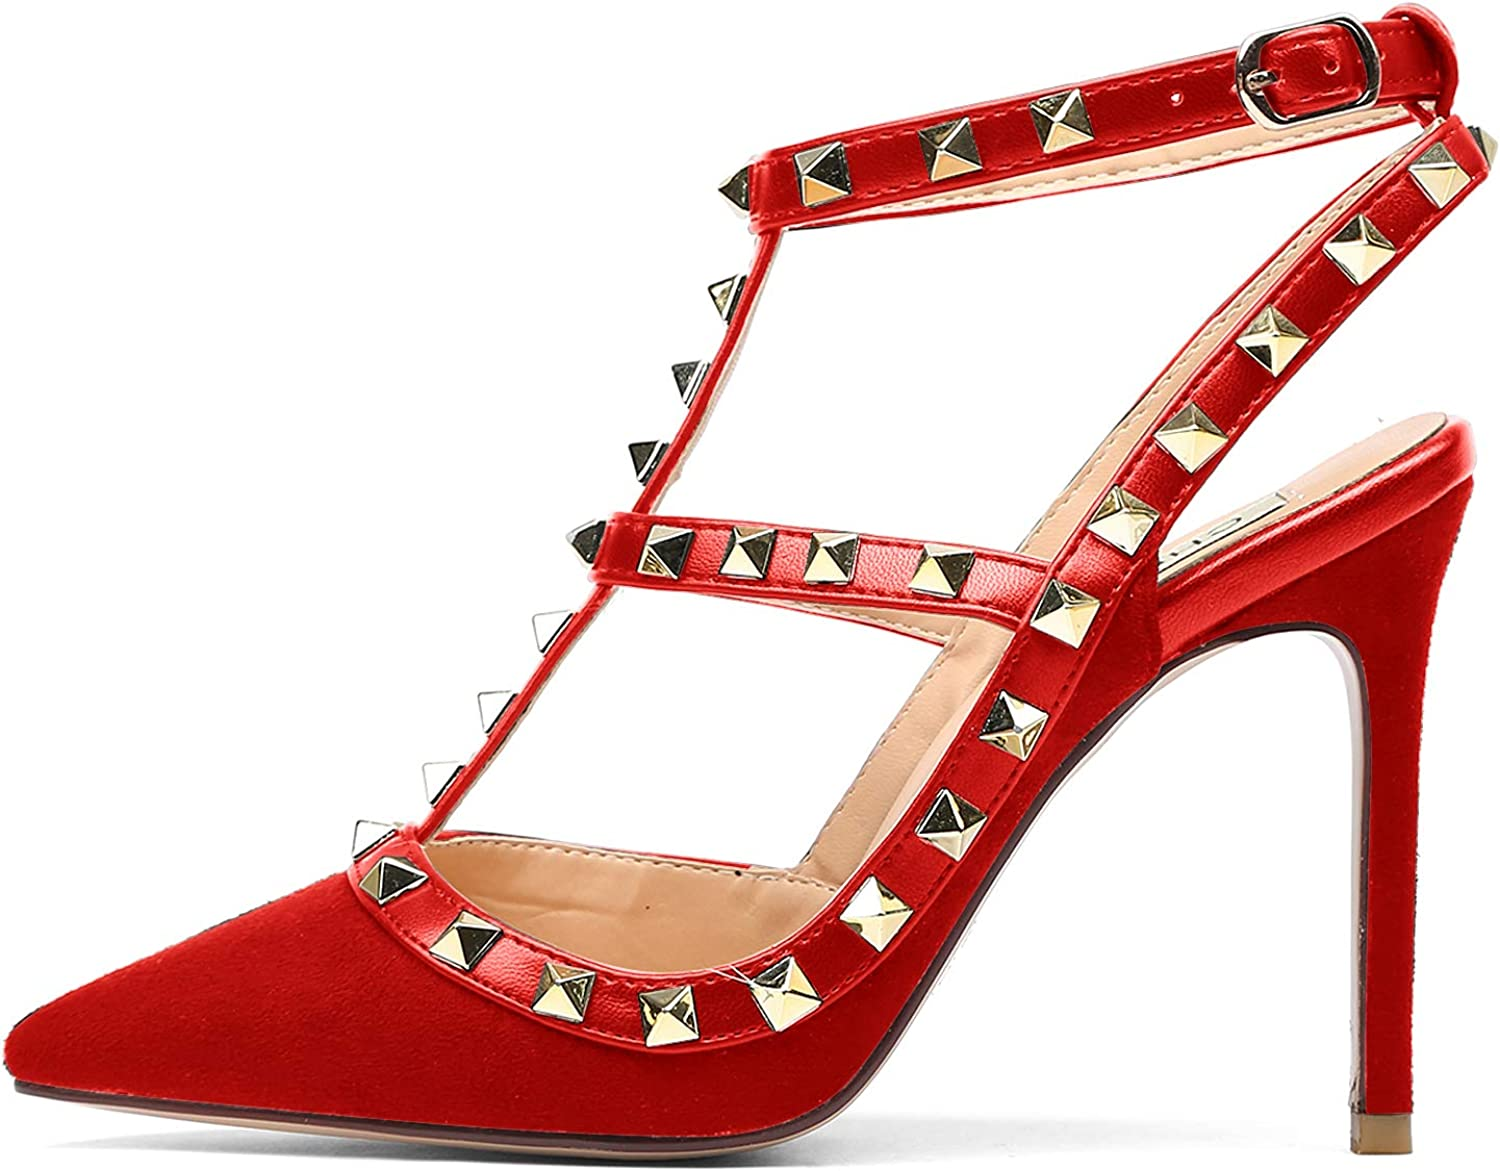 CHRIST Women's Pointed Toe High Heels Studded Strappy Slingback Stilettos Leather Sandals Pumps 5-14